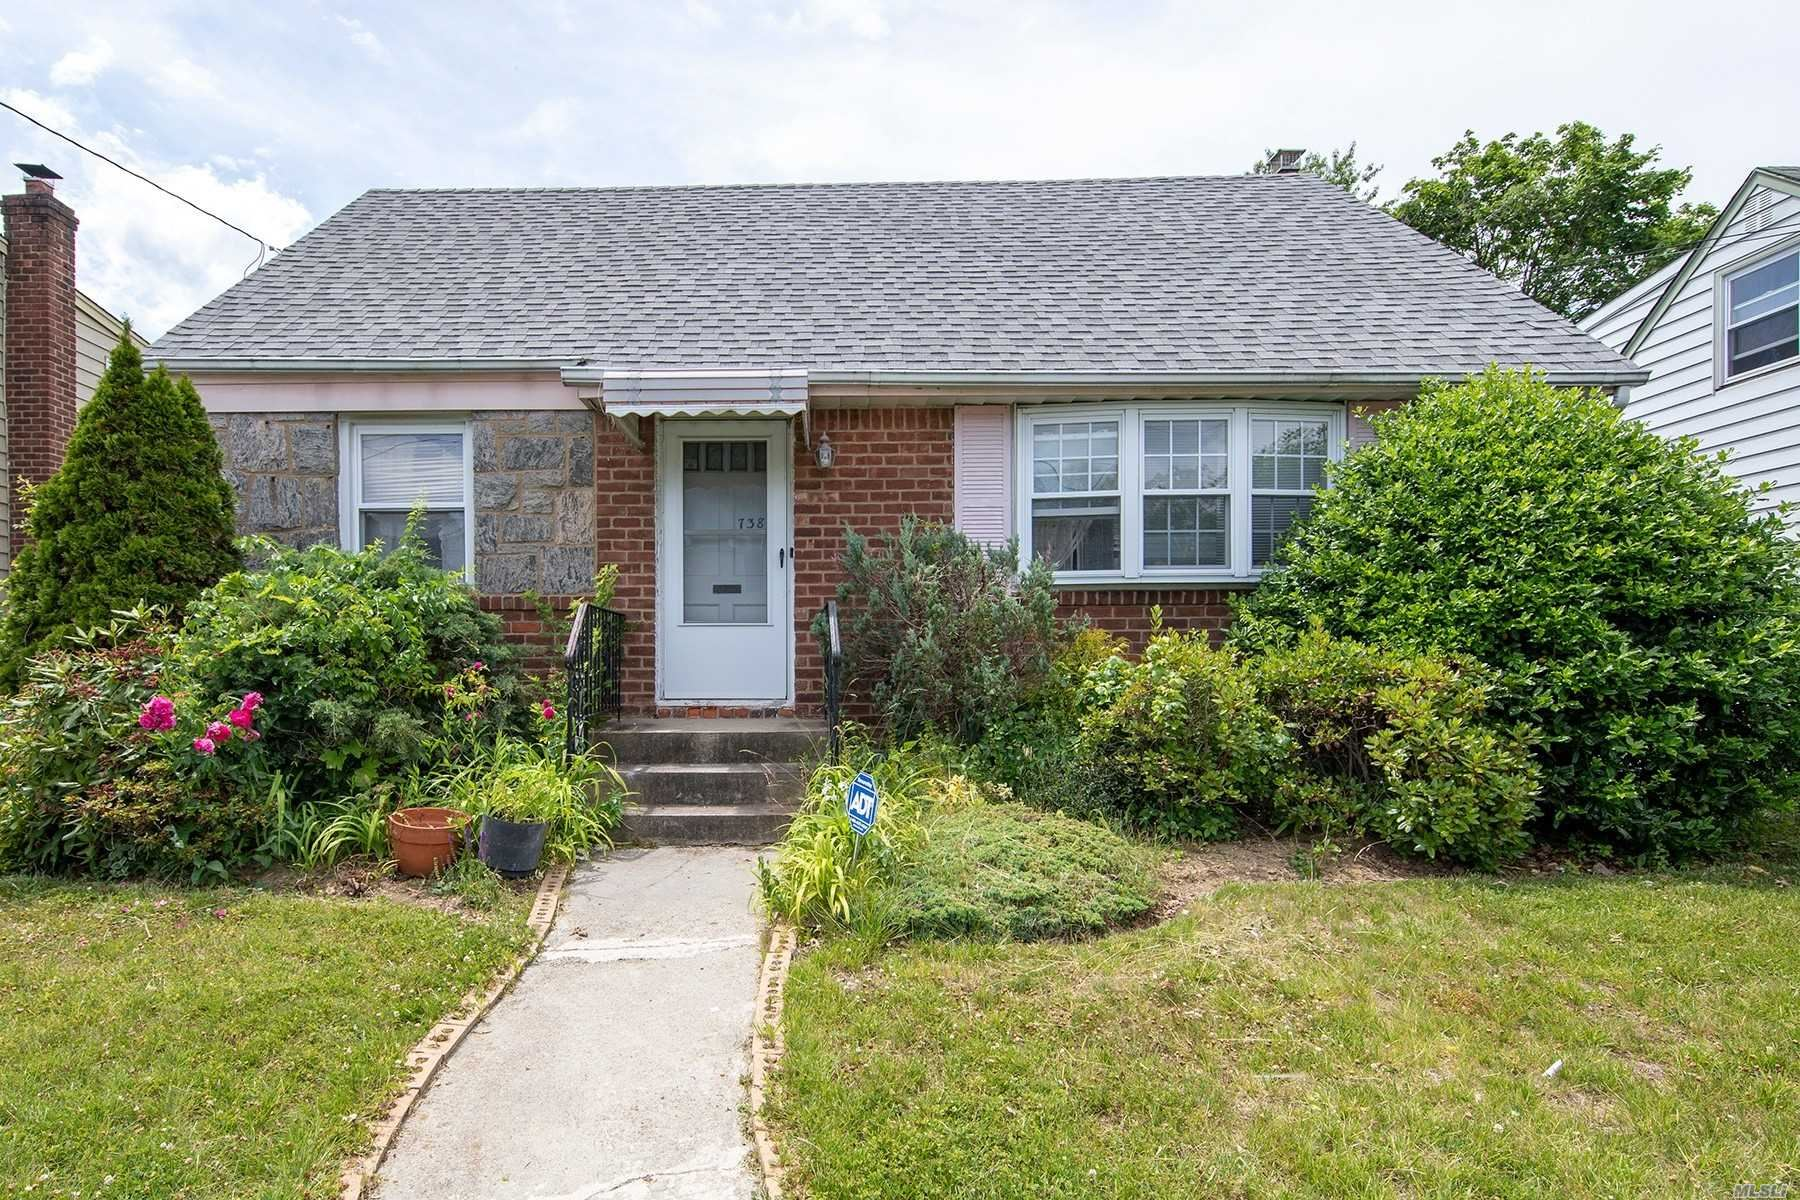 738 Martin Dr, Uniondale, NY 11553 - MLS#: 3226175